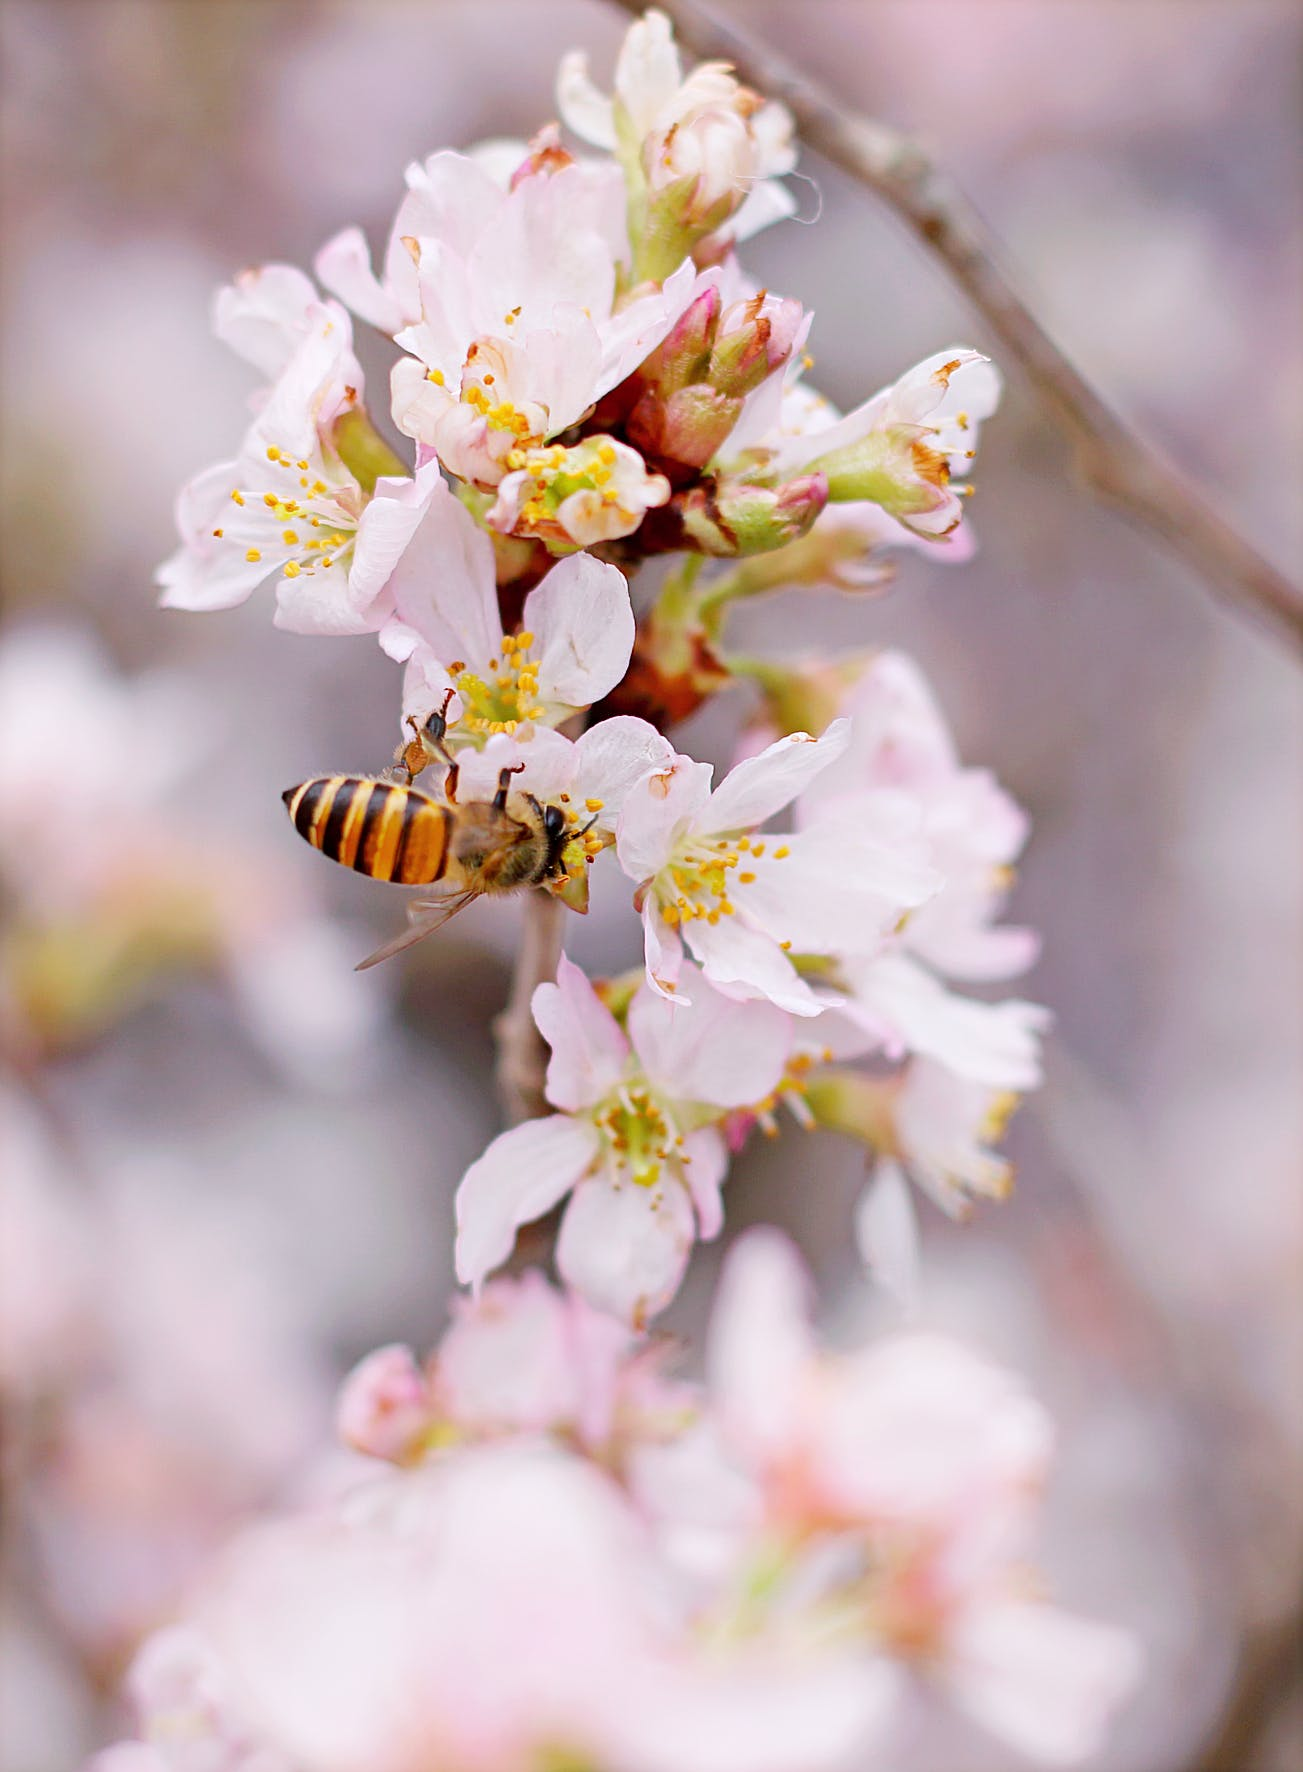 Closeup Photo of Honeybee Perched on Pink-and-white Cluster Flowers